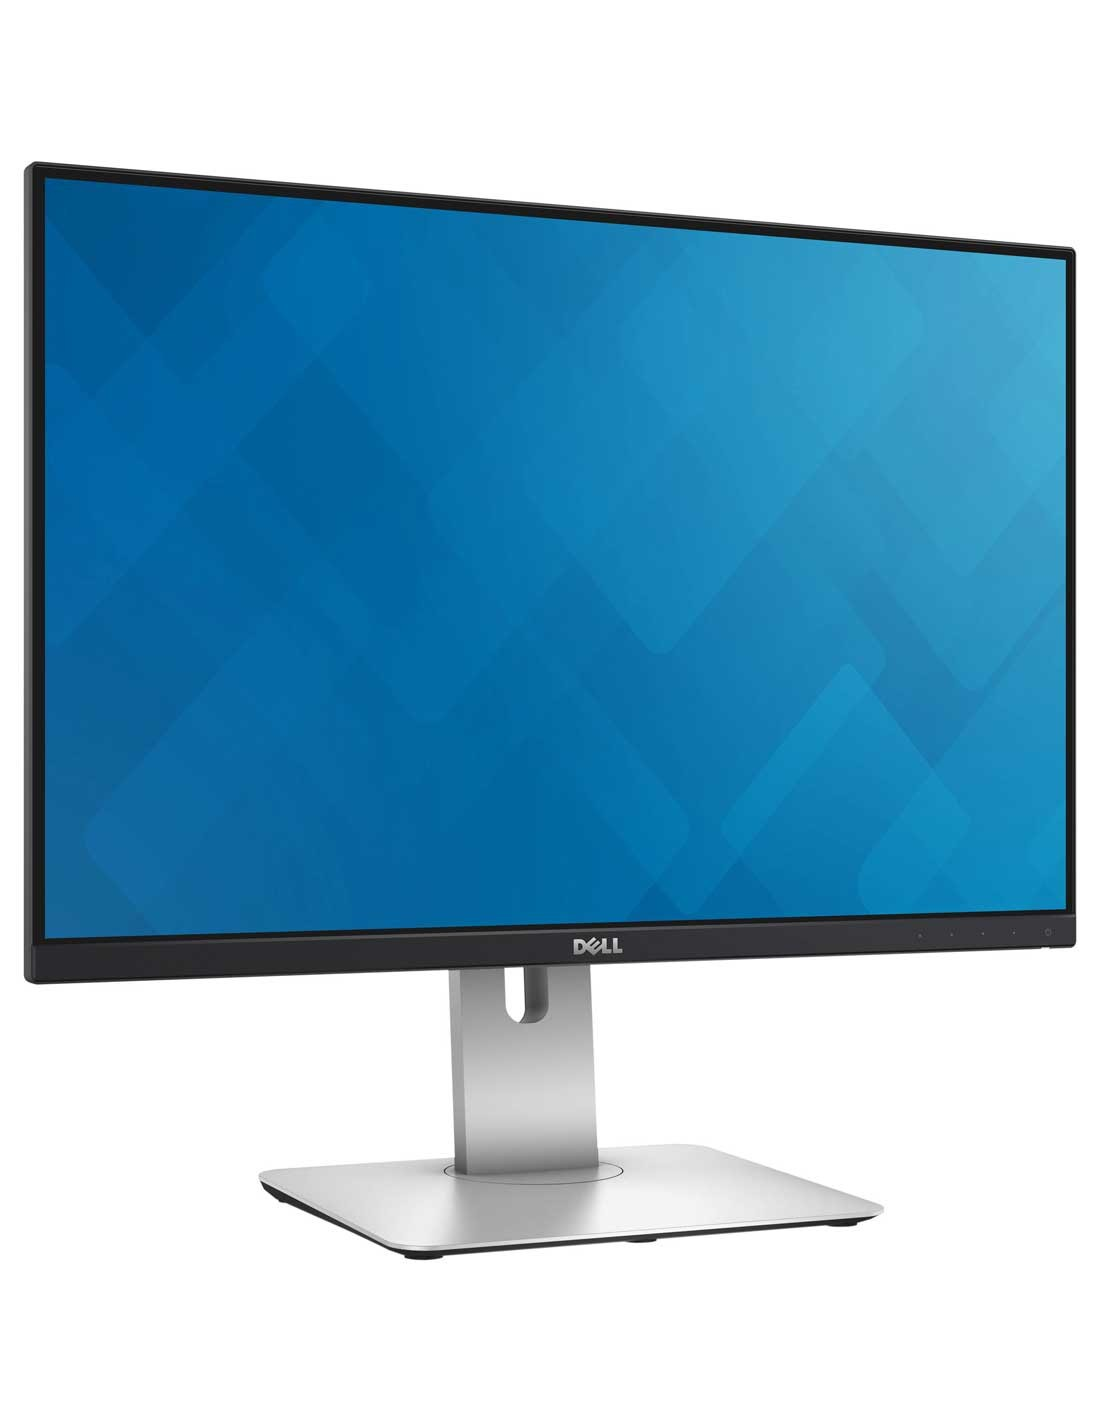 Dell UltraSharp 24 Monitor U2415 at the cheapest price and fast free delivery in Dubai, UAE